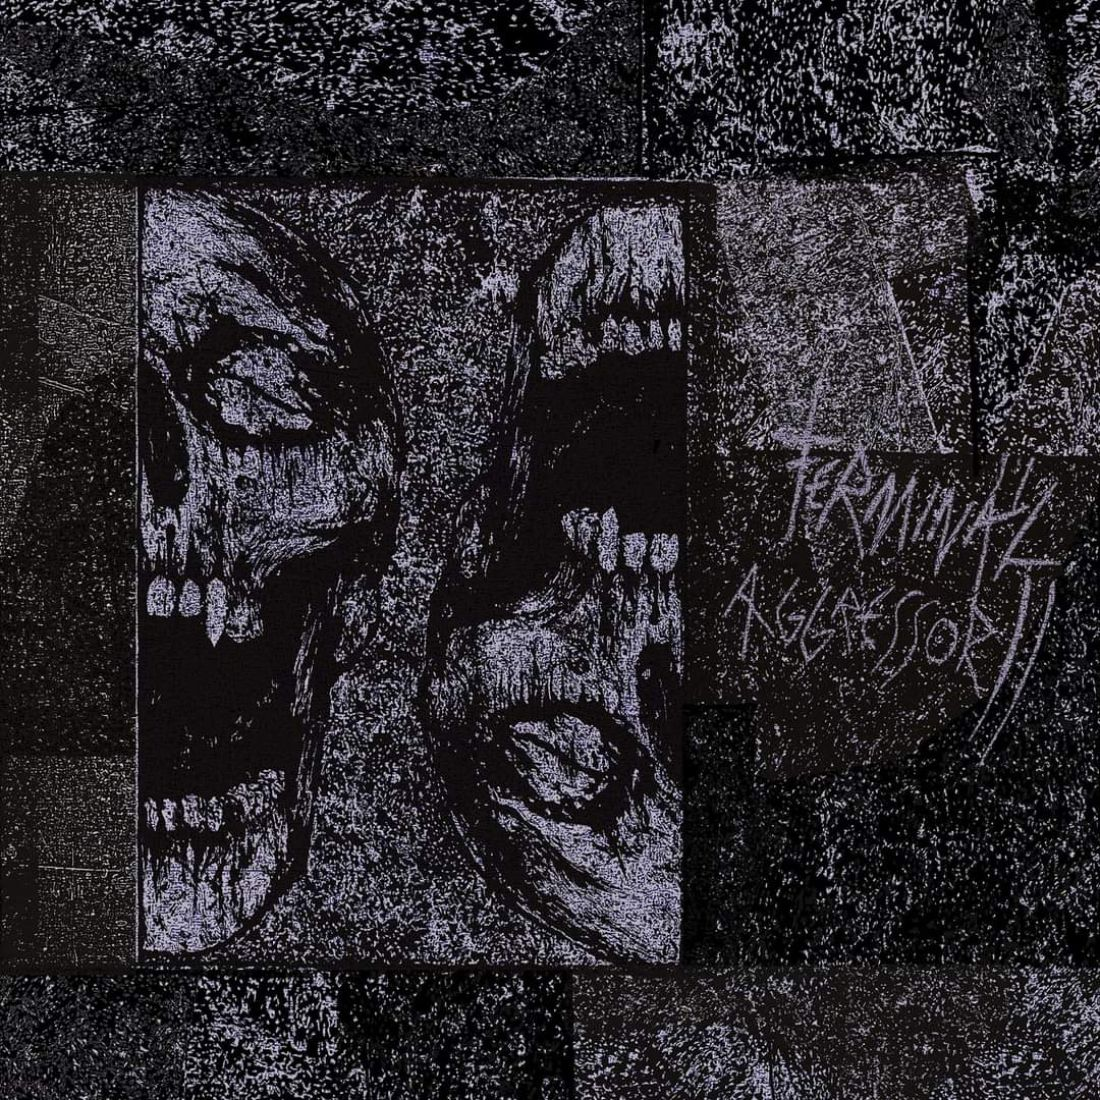 Review for Dragged into Sunlight - Terminal Aggressor II